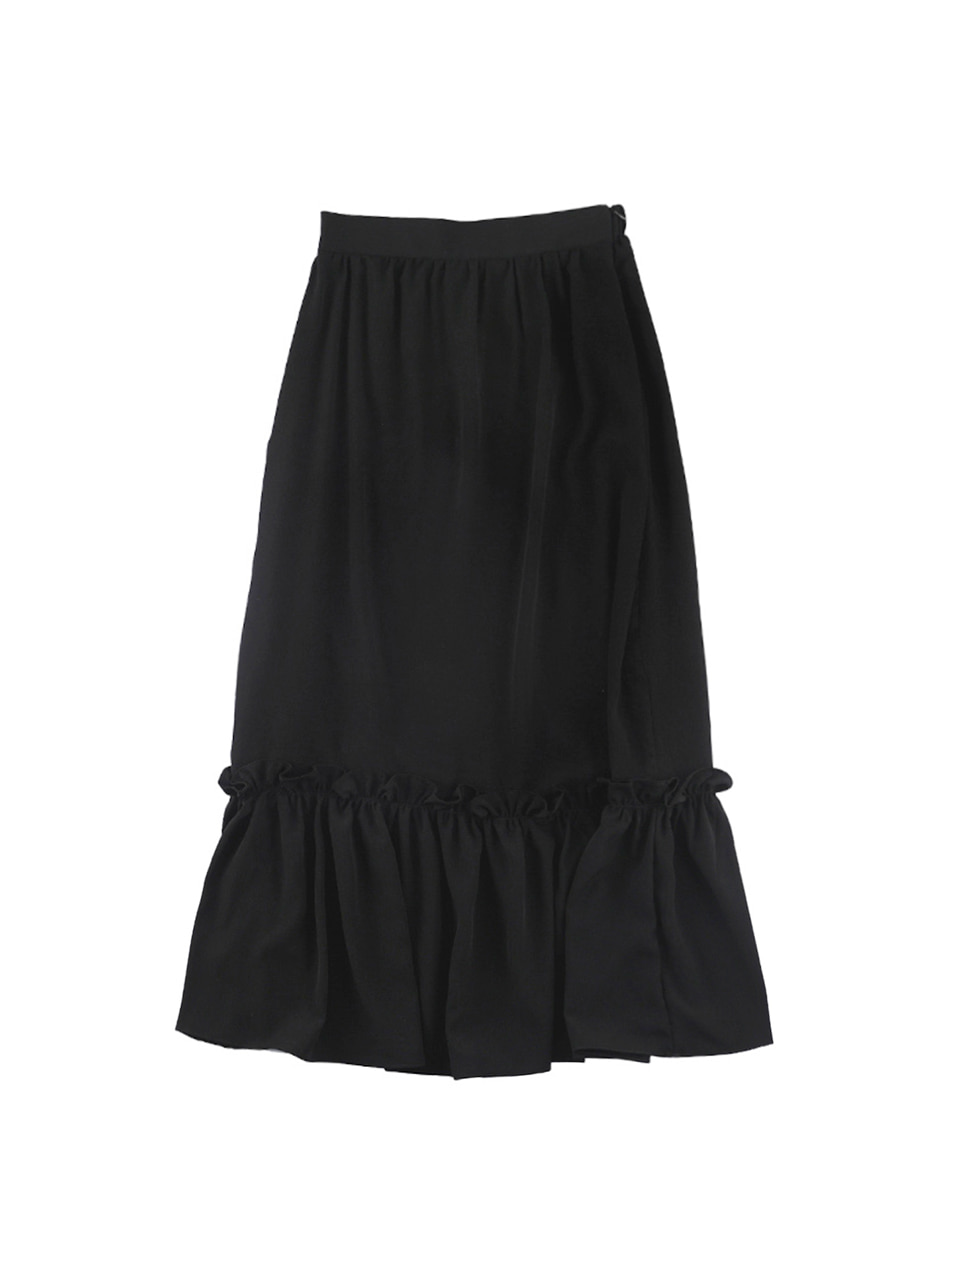 mgmg ruffle long skirt_black